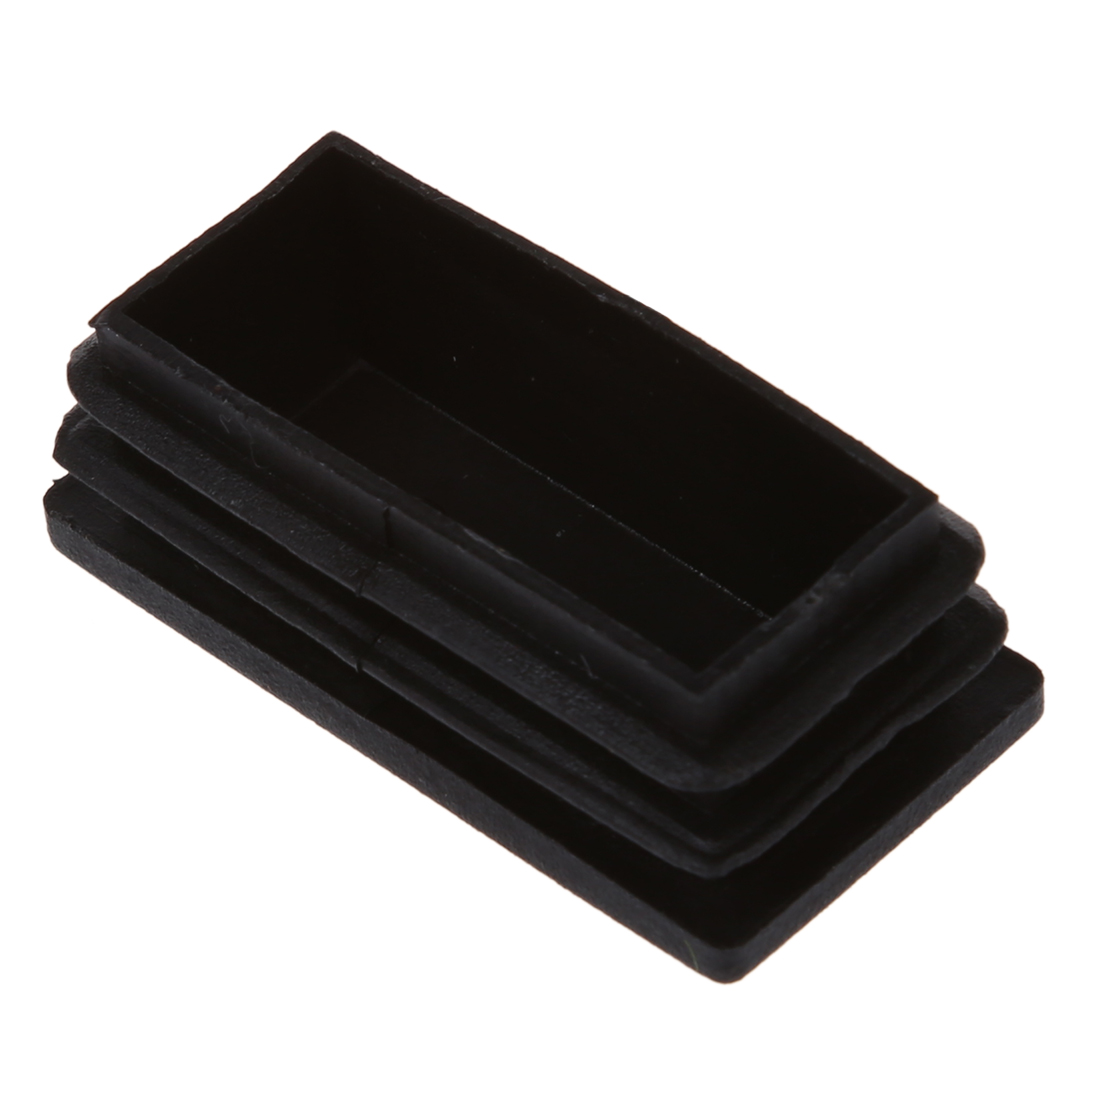 Promotion! Plastic Rectangle Tube Inserts End Blanking Cap 25x50mm Black10 Pcs